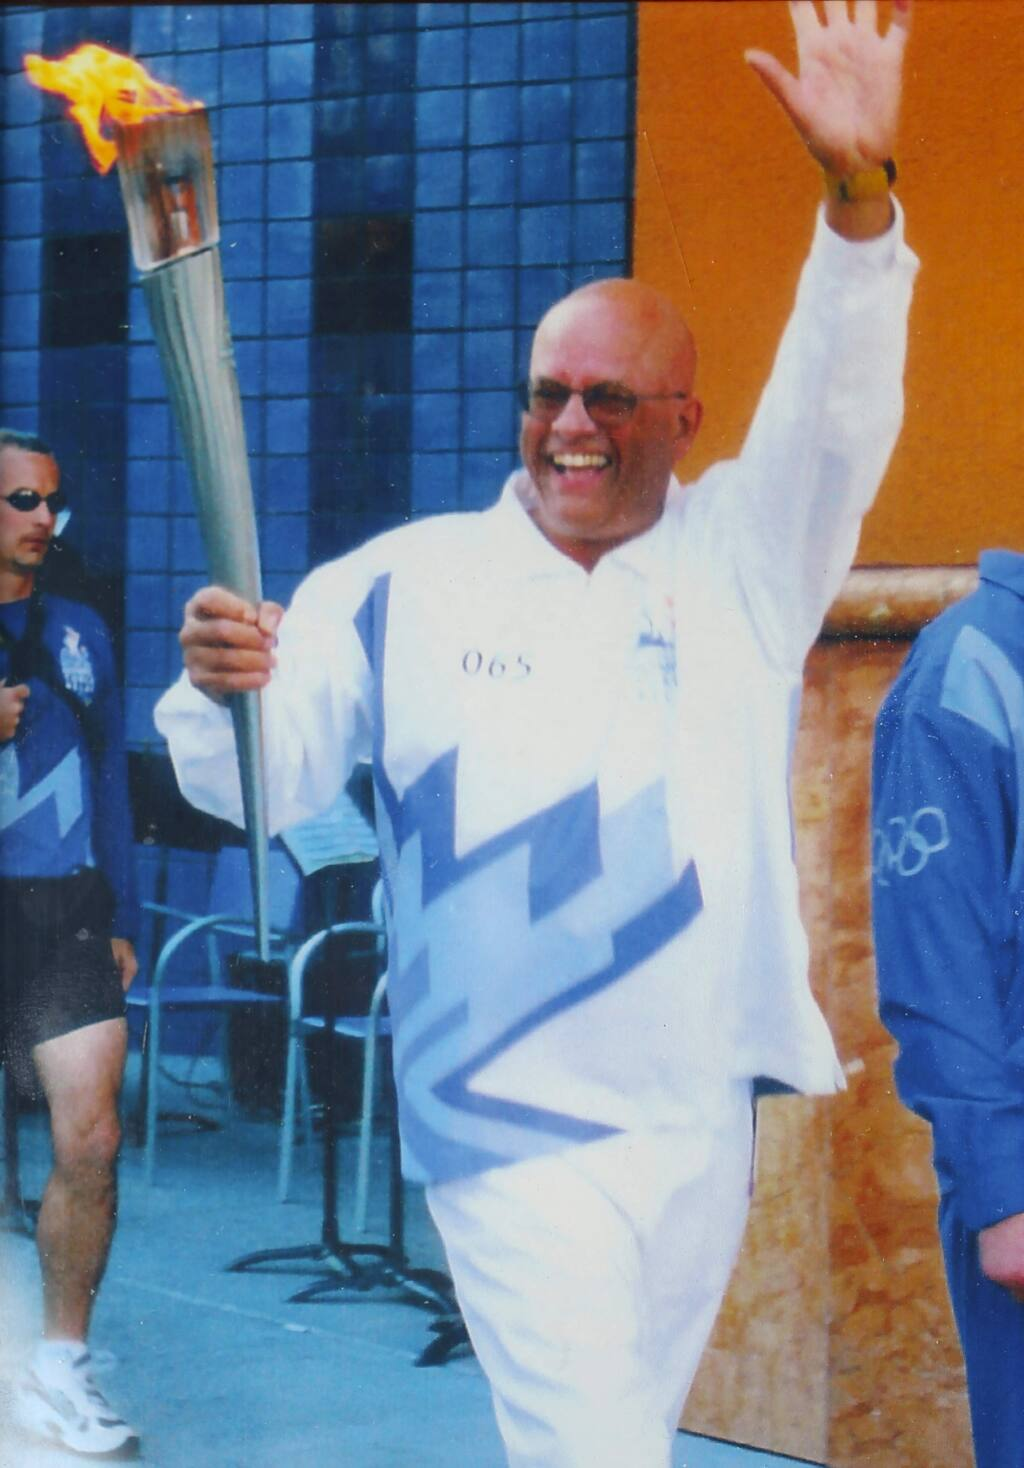 Tom Francois carrying the Olympic torch in 2002.(Photo courtesy Tom Francois)